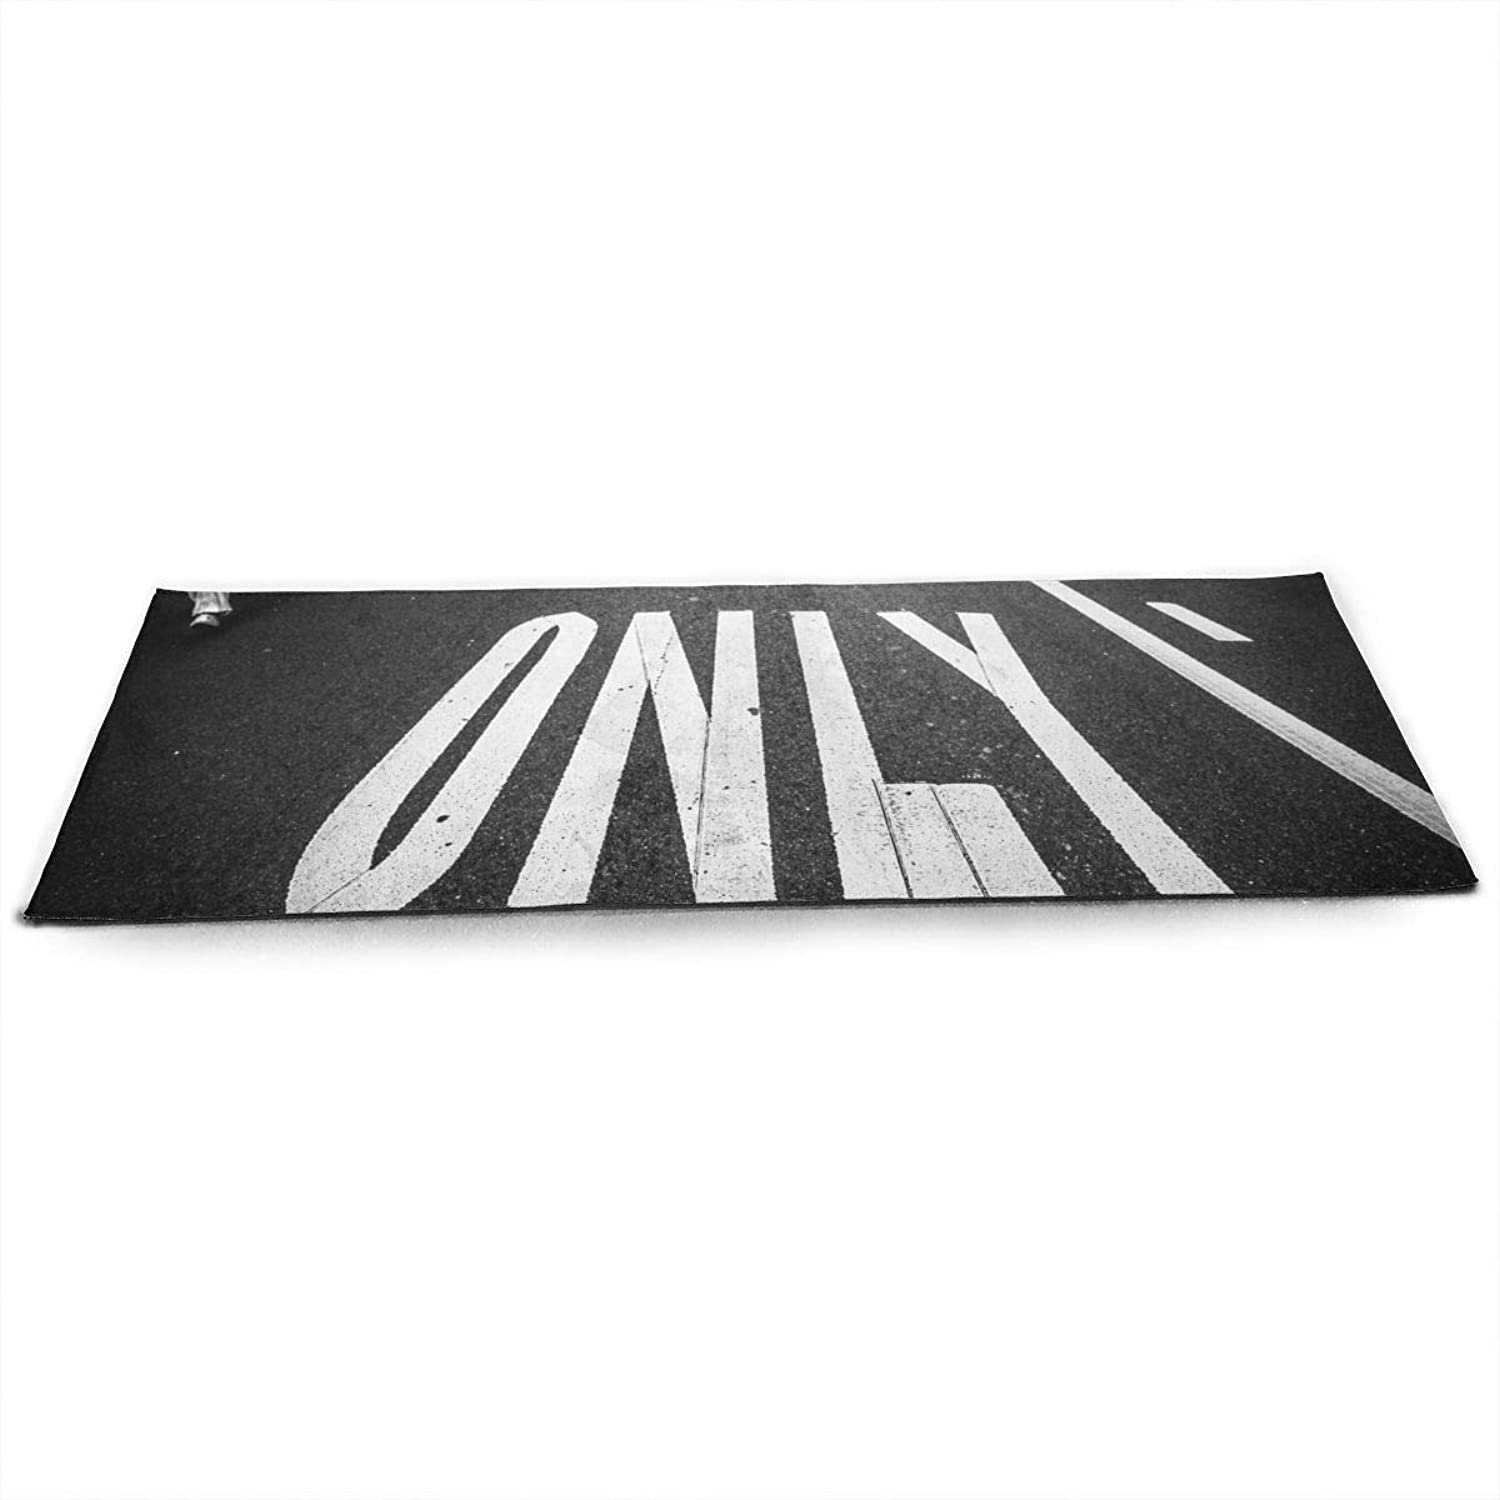 Whages Only Road NonSlip Soft Advanced Printed Environmental Yoga Mat 31.5   × 51.2